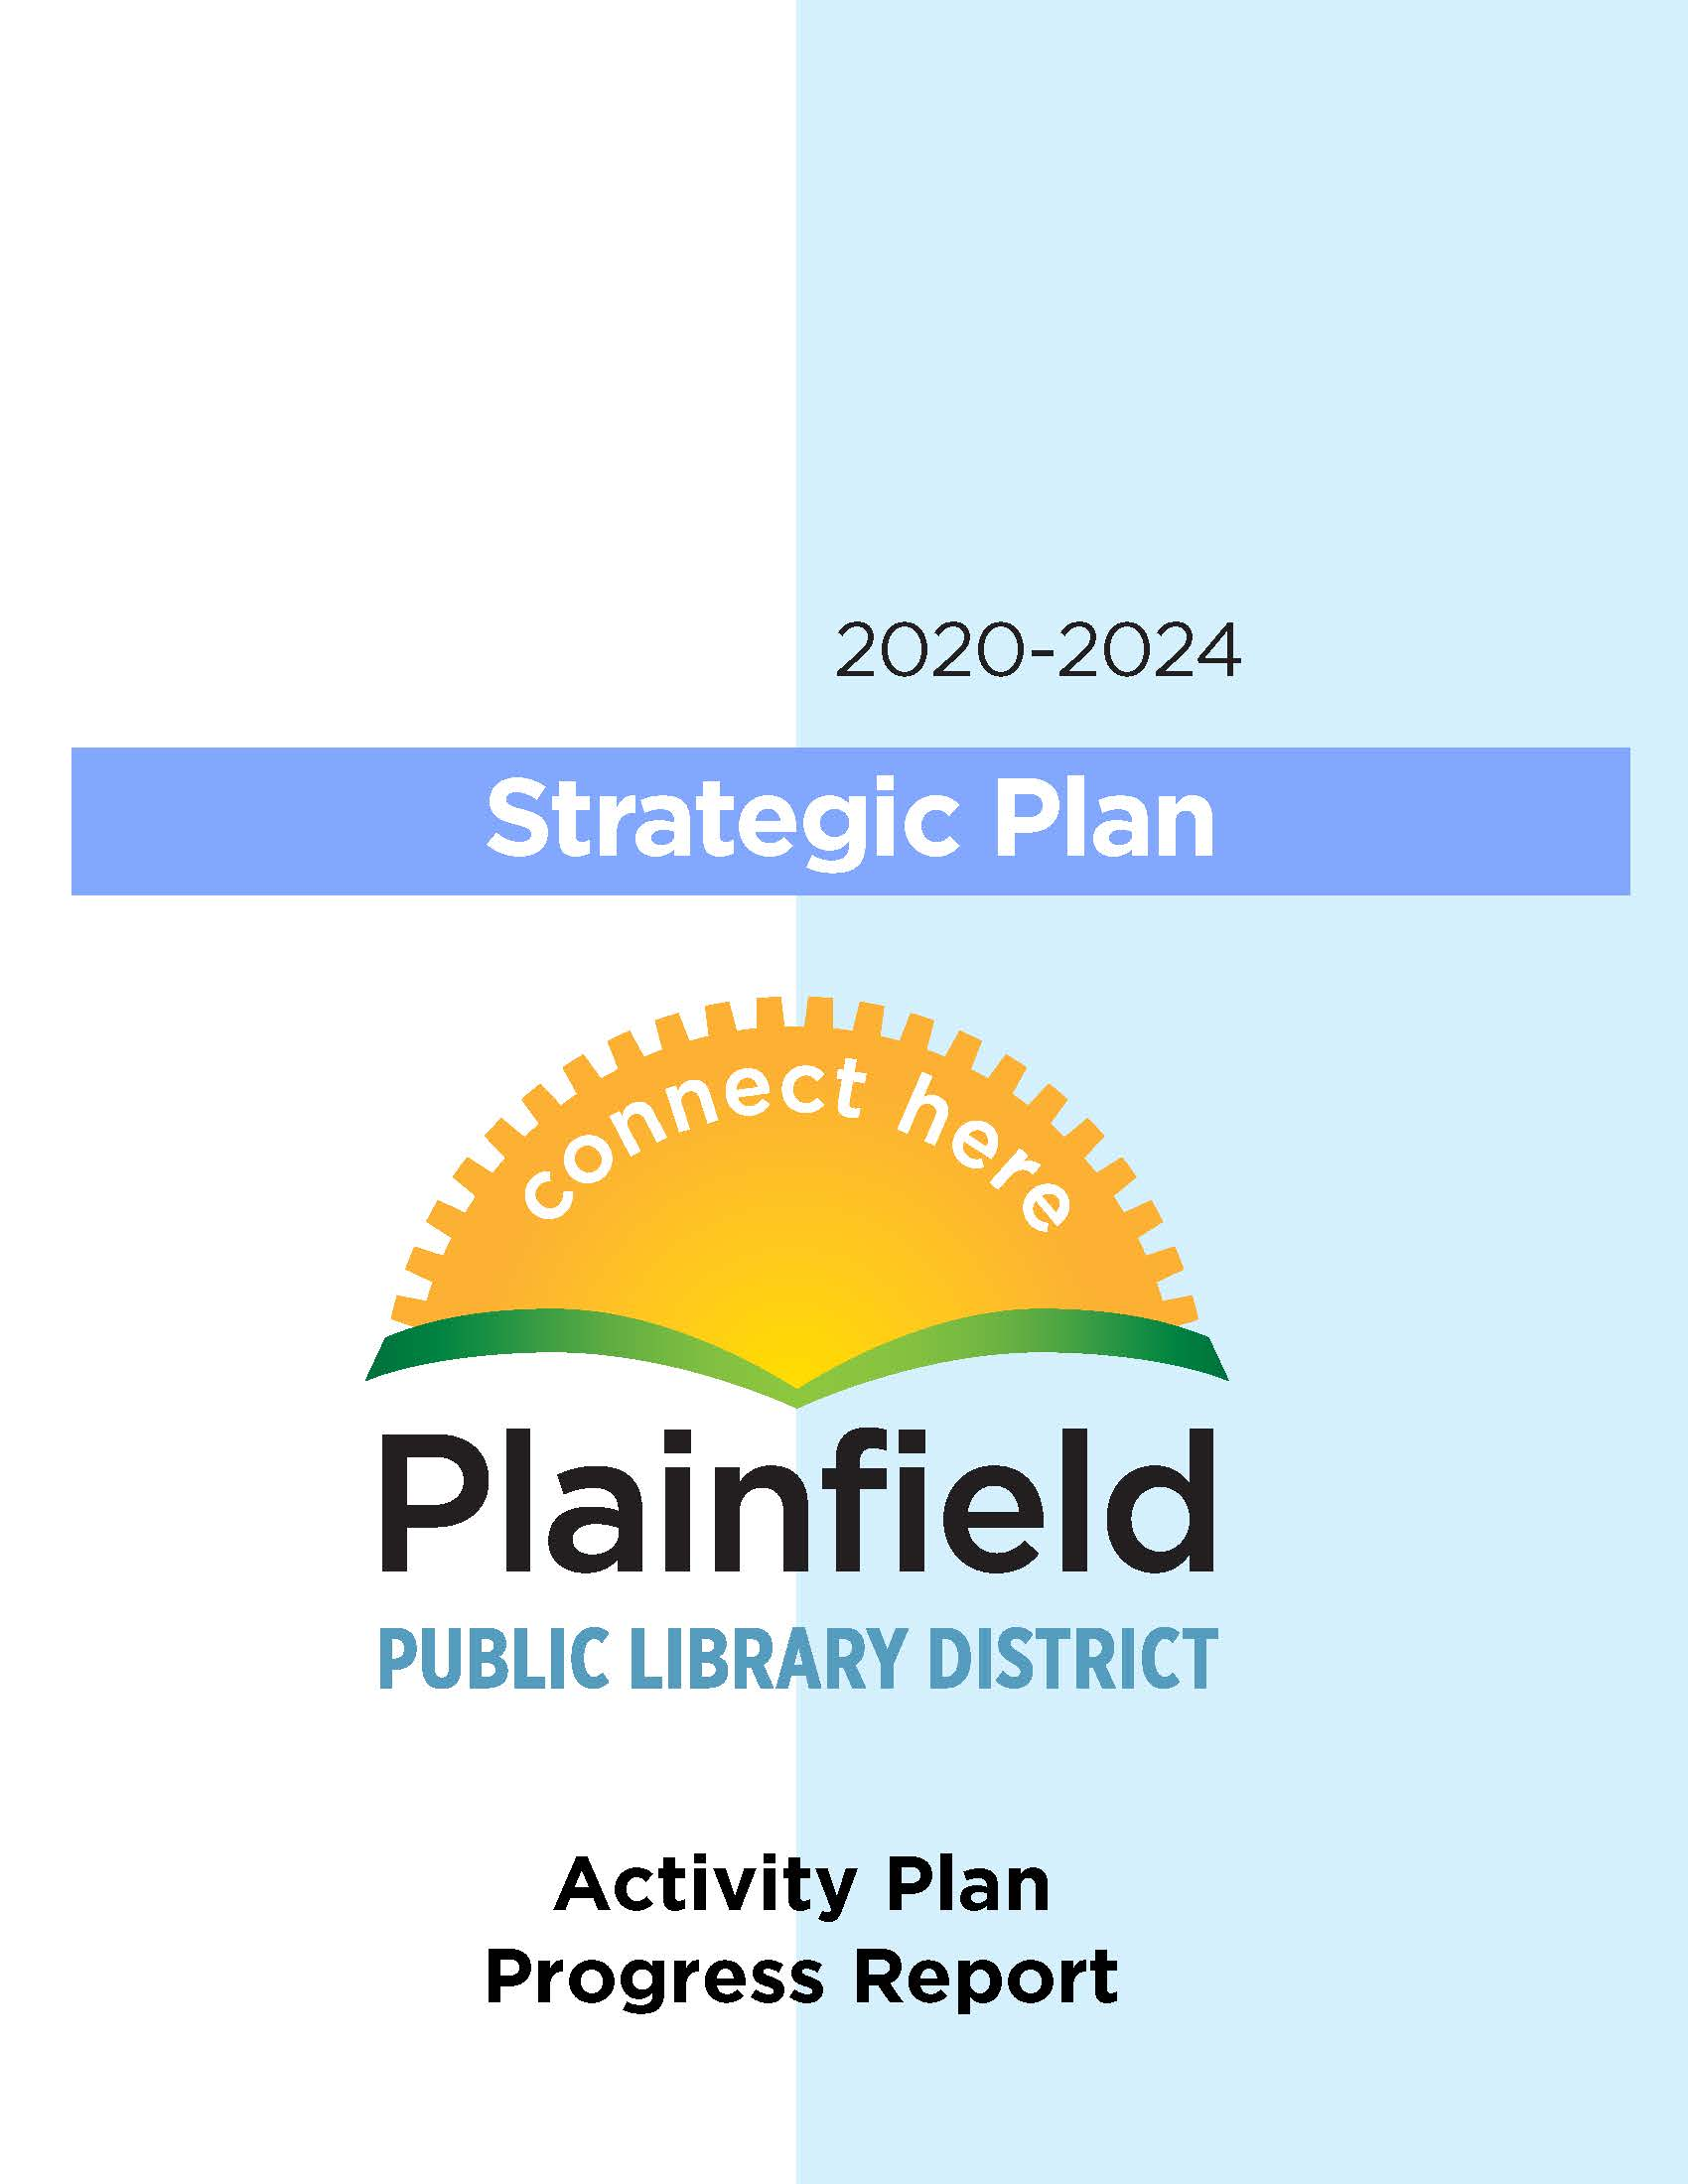 Front page of the Library's strategic plan